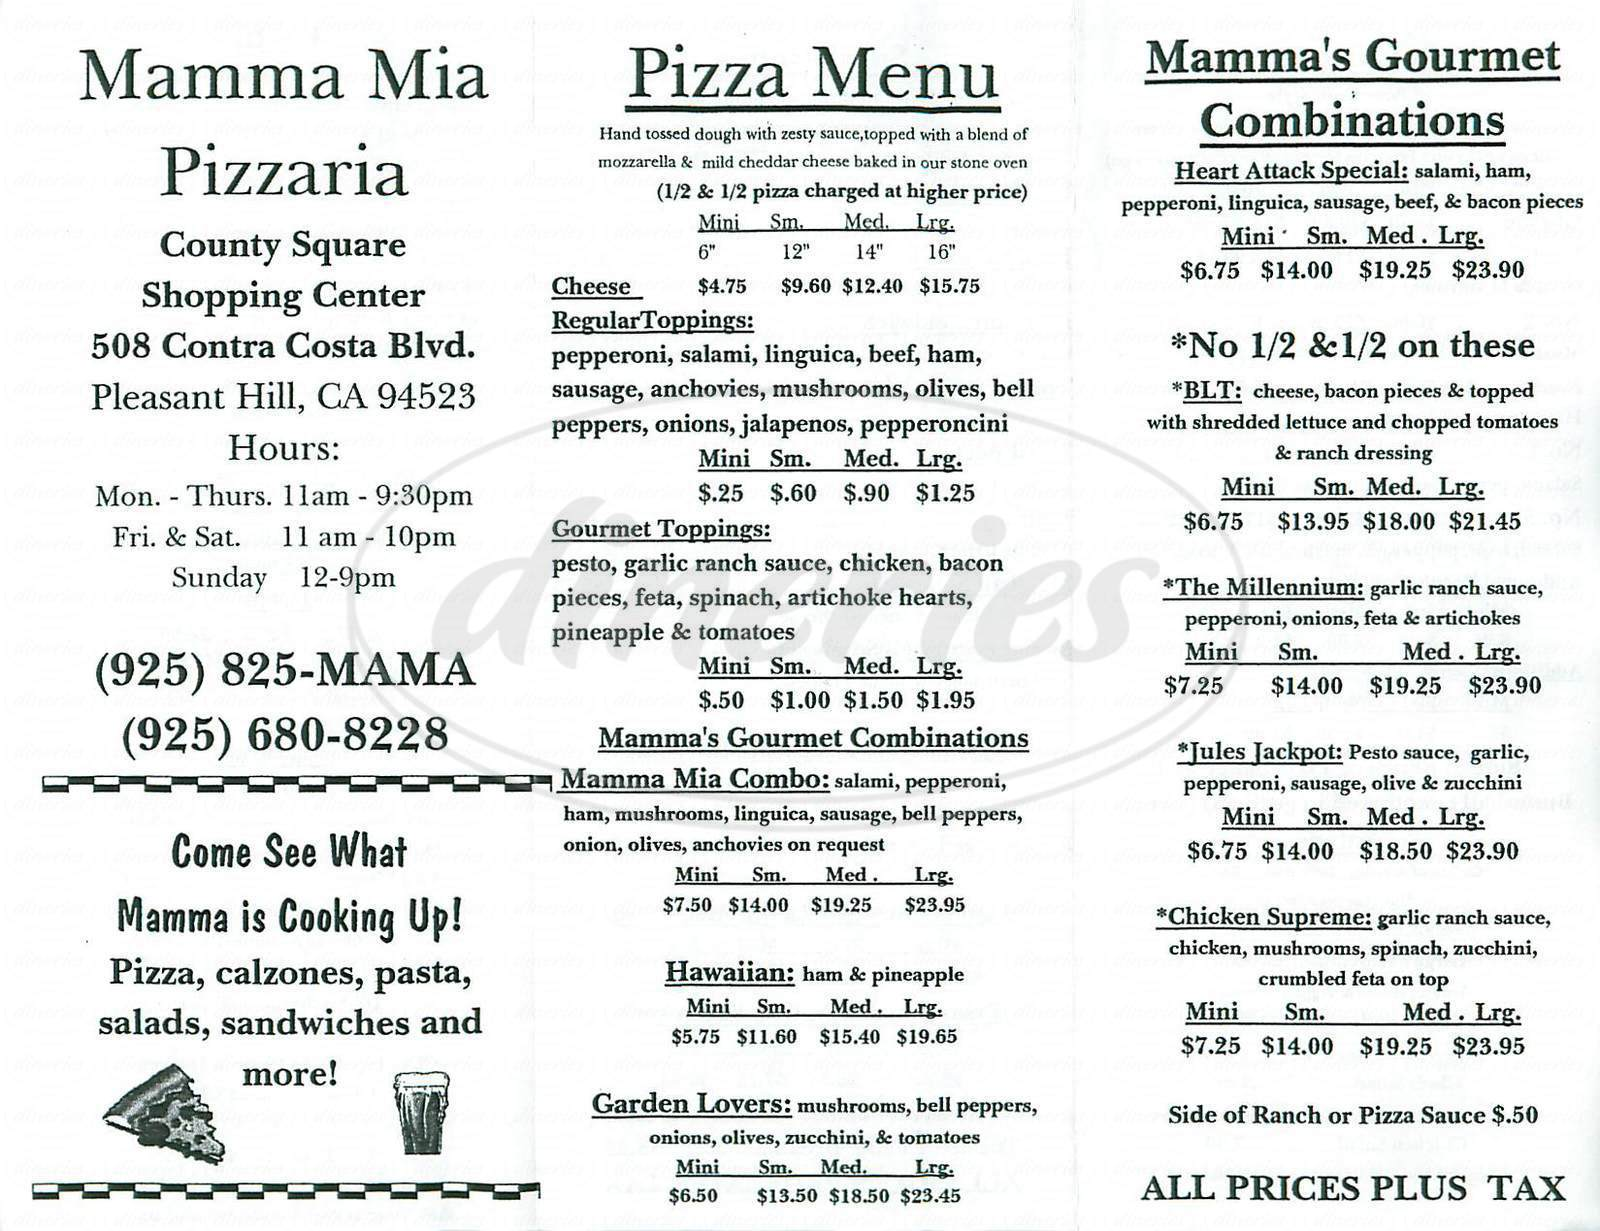 menu for Mamma Mia Pizzaria